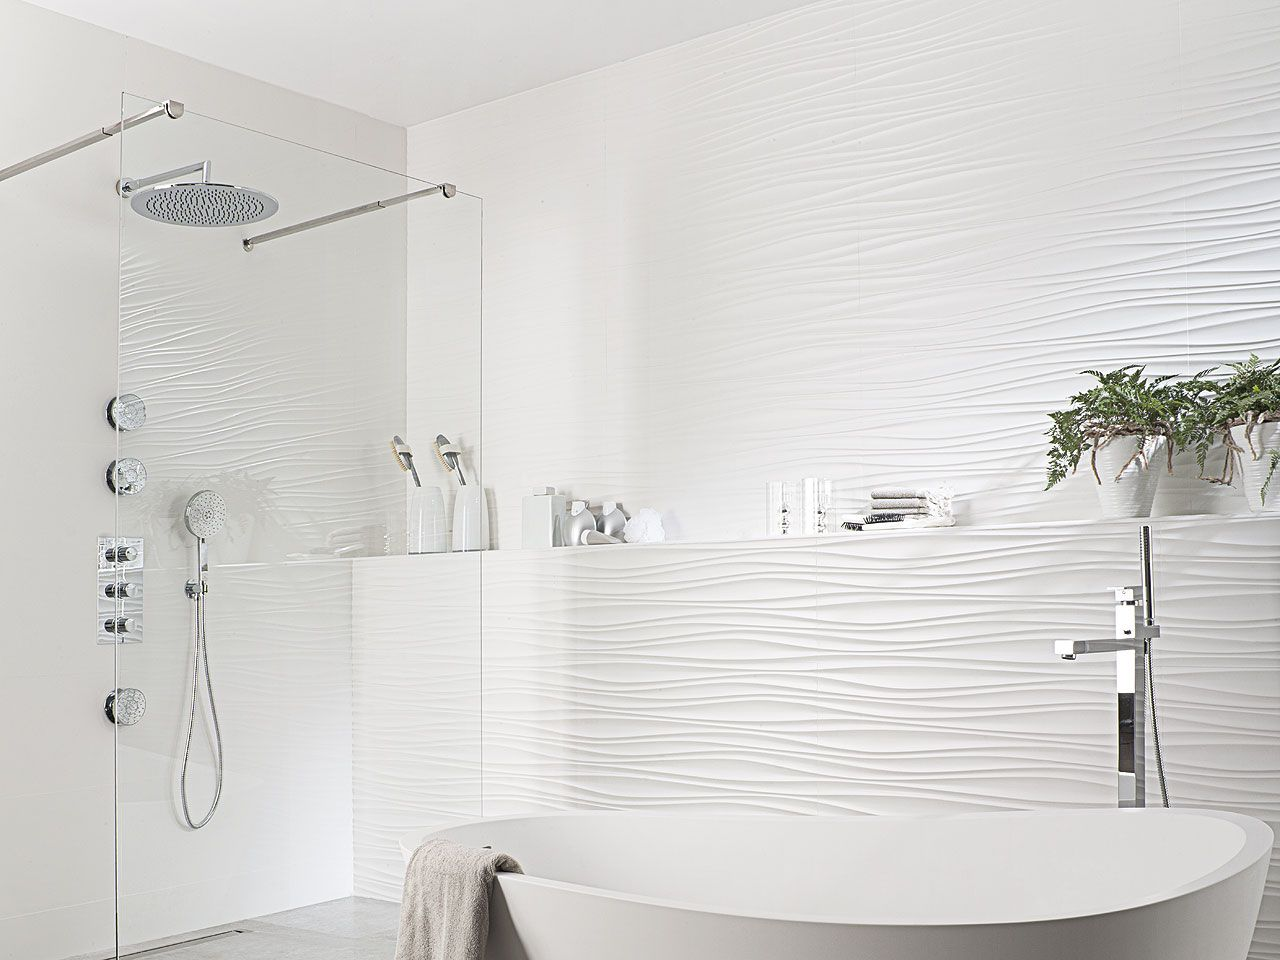 Oxo line blanco 31 6 x 90 cm ba os pinterest ba os for Porcelanosa douche